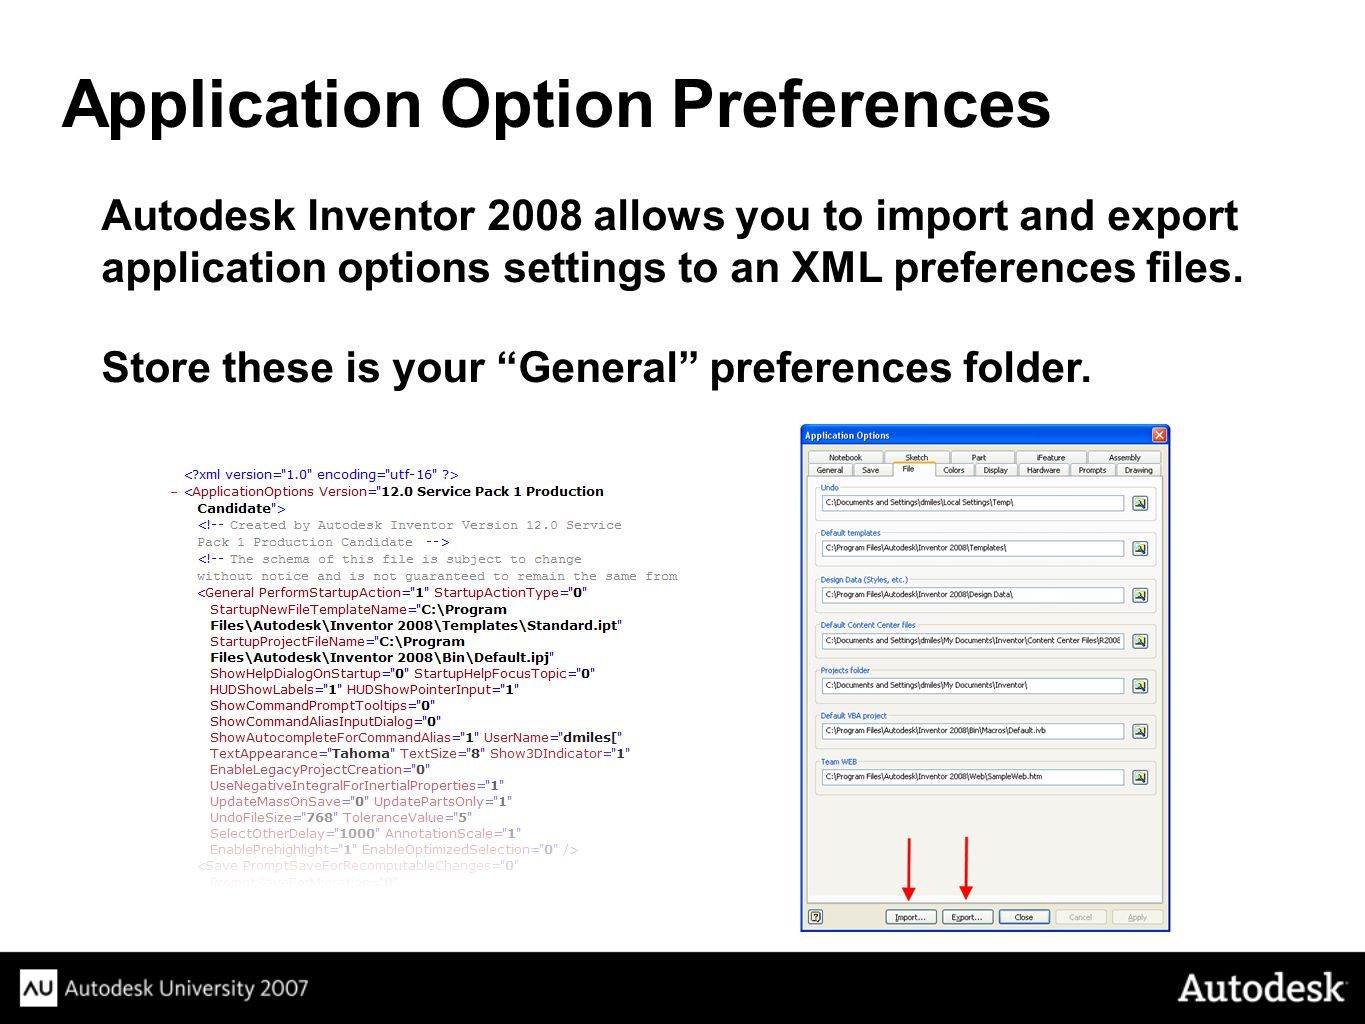 Application Option Preferences